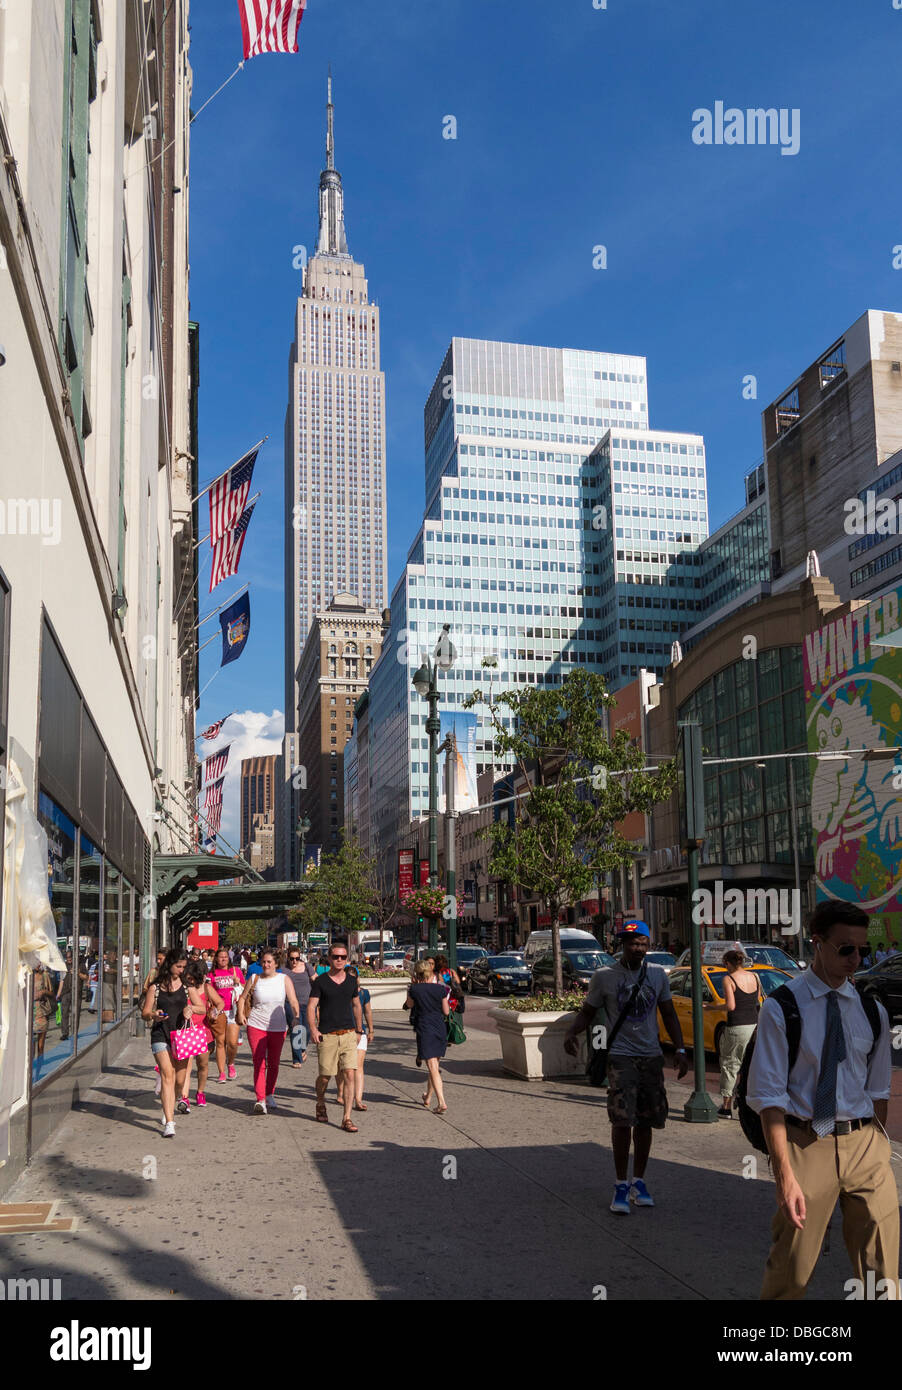 New York Street - New-yorkais sur le trottoir avec l'Empire State Building en arrière-plan, Manhattan, Photo Stock